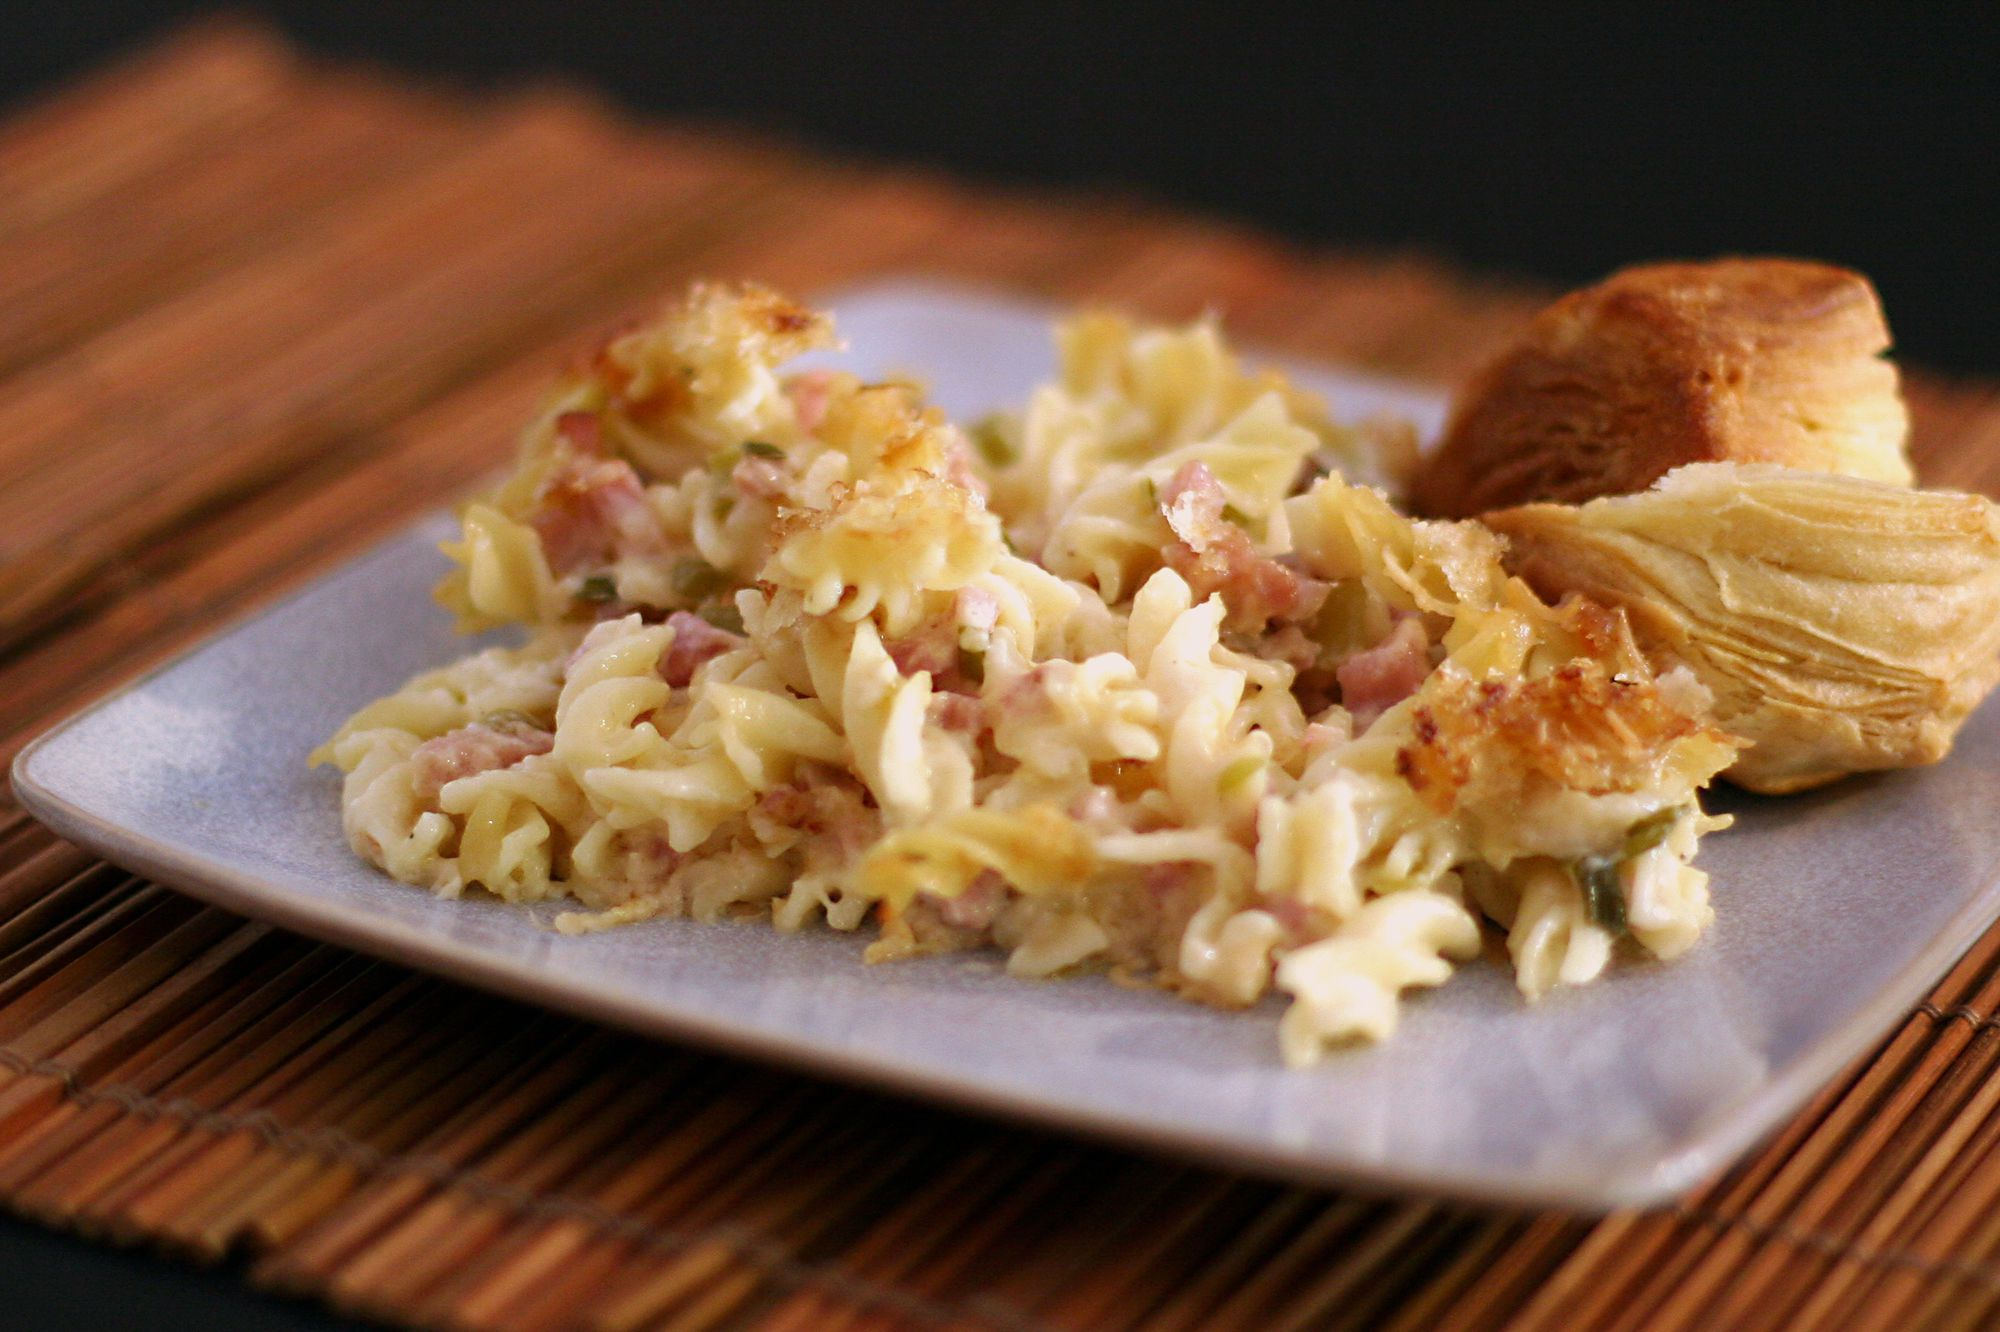 How to Make Ham, Swiss, and Pasta Casserole